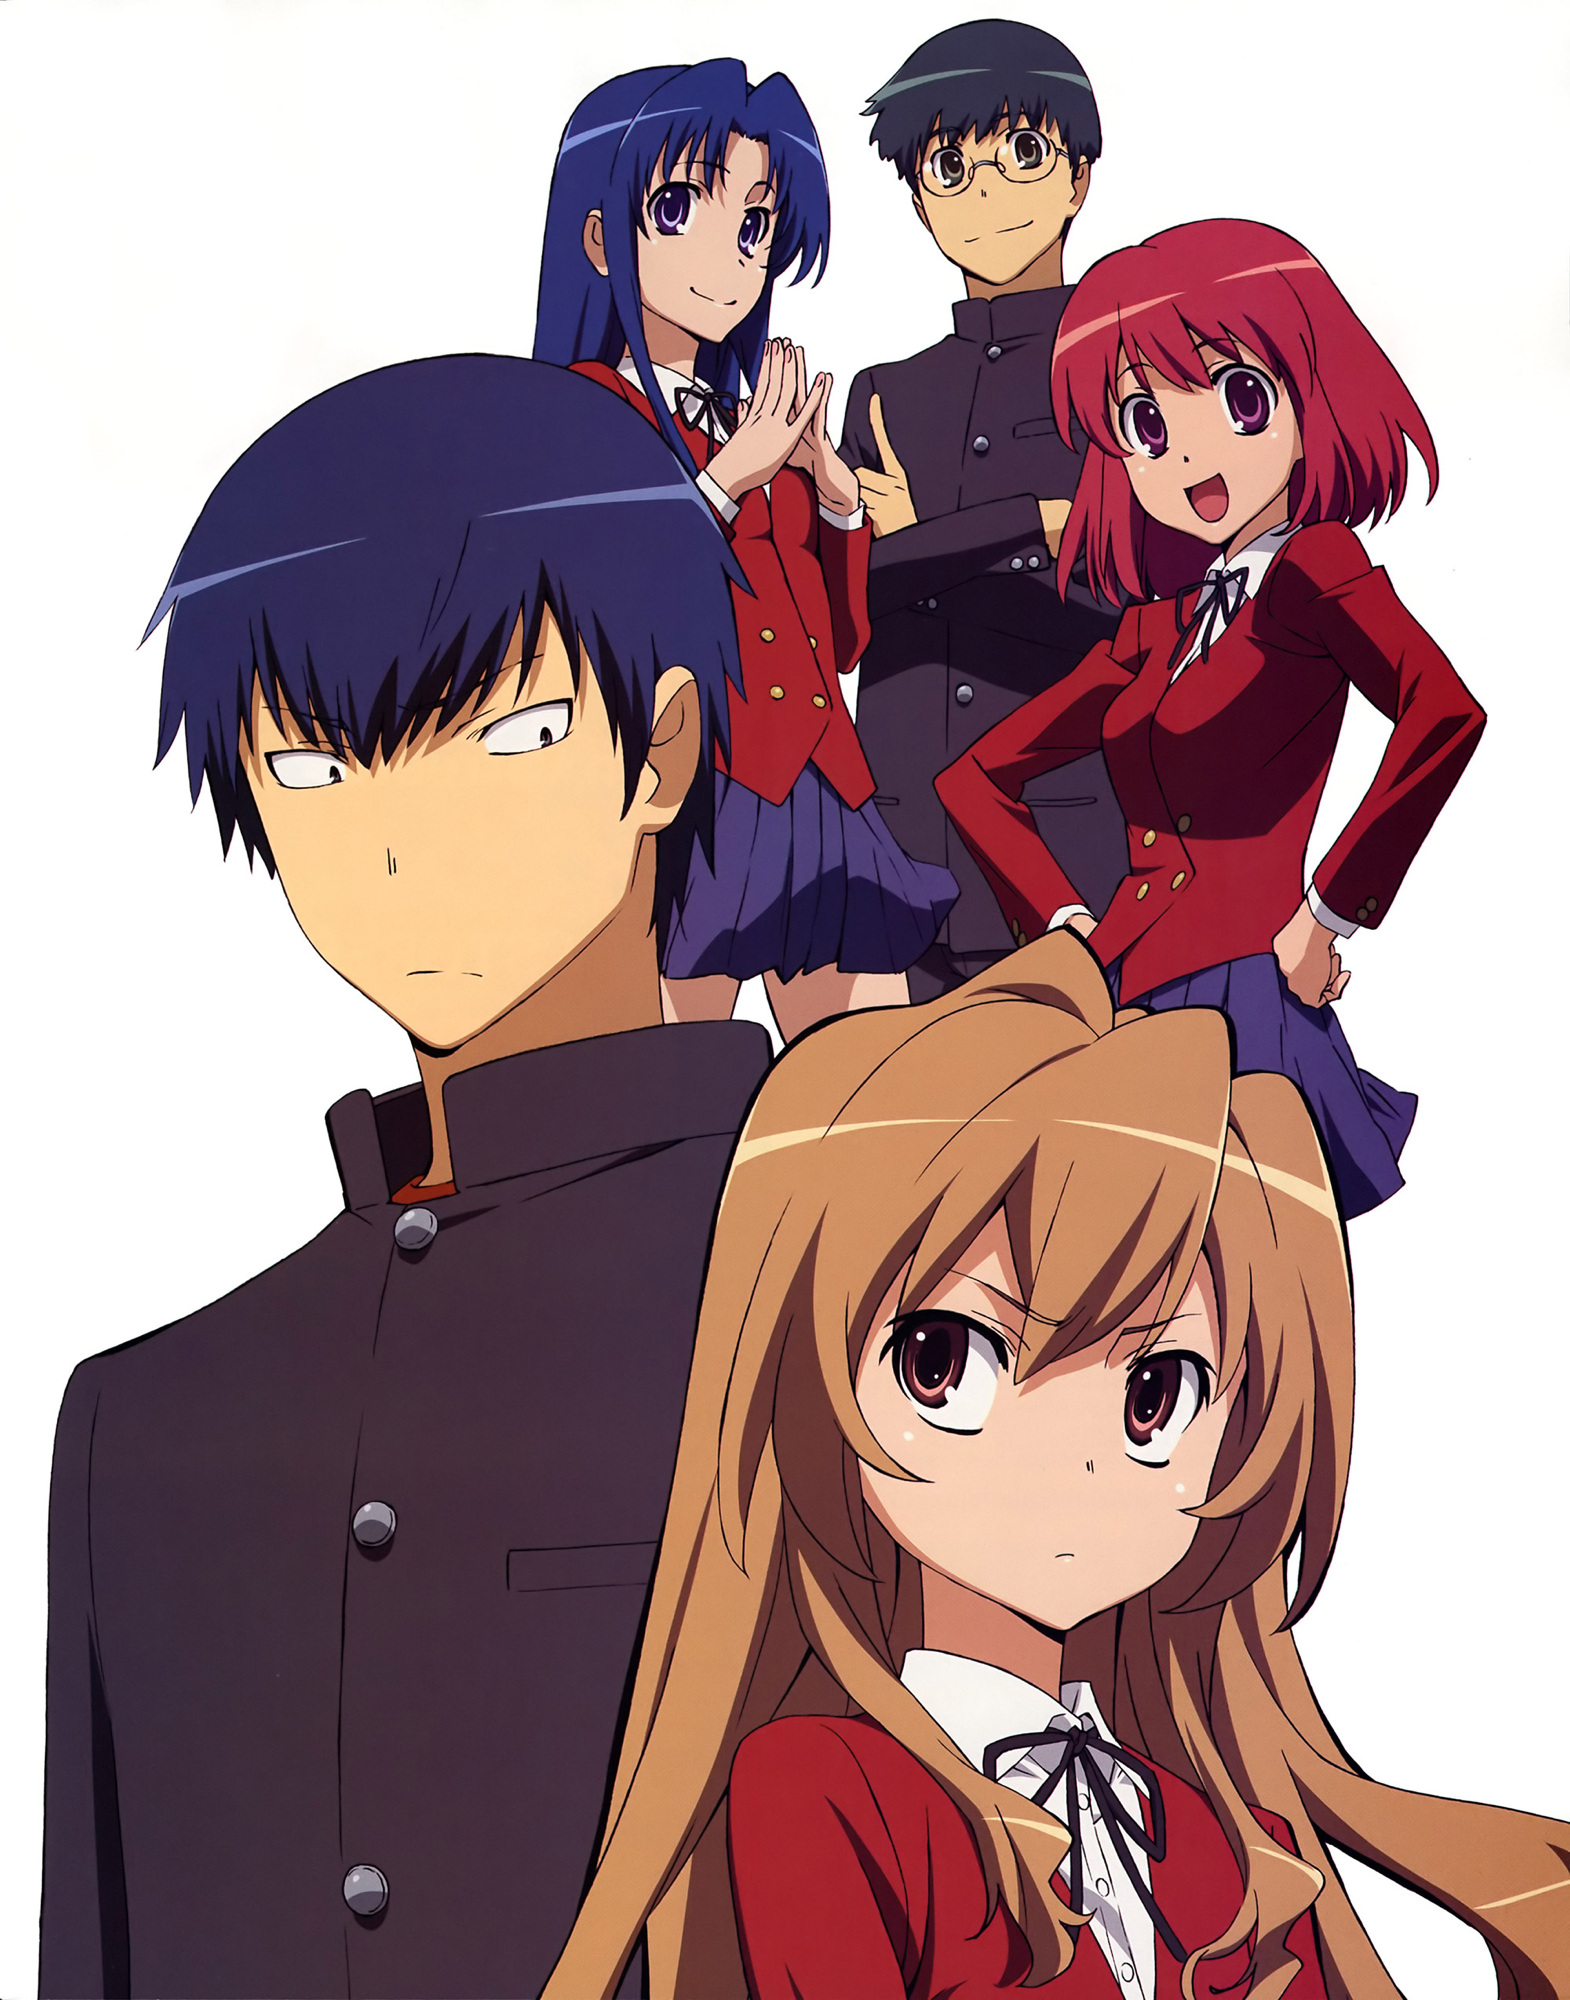 Just finished watching Toradora and let me say this..... Is AMAIZING !!!!! I cried soo much!!